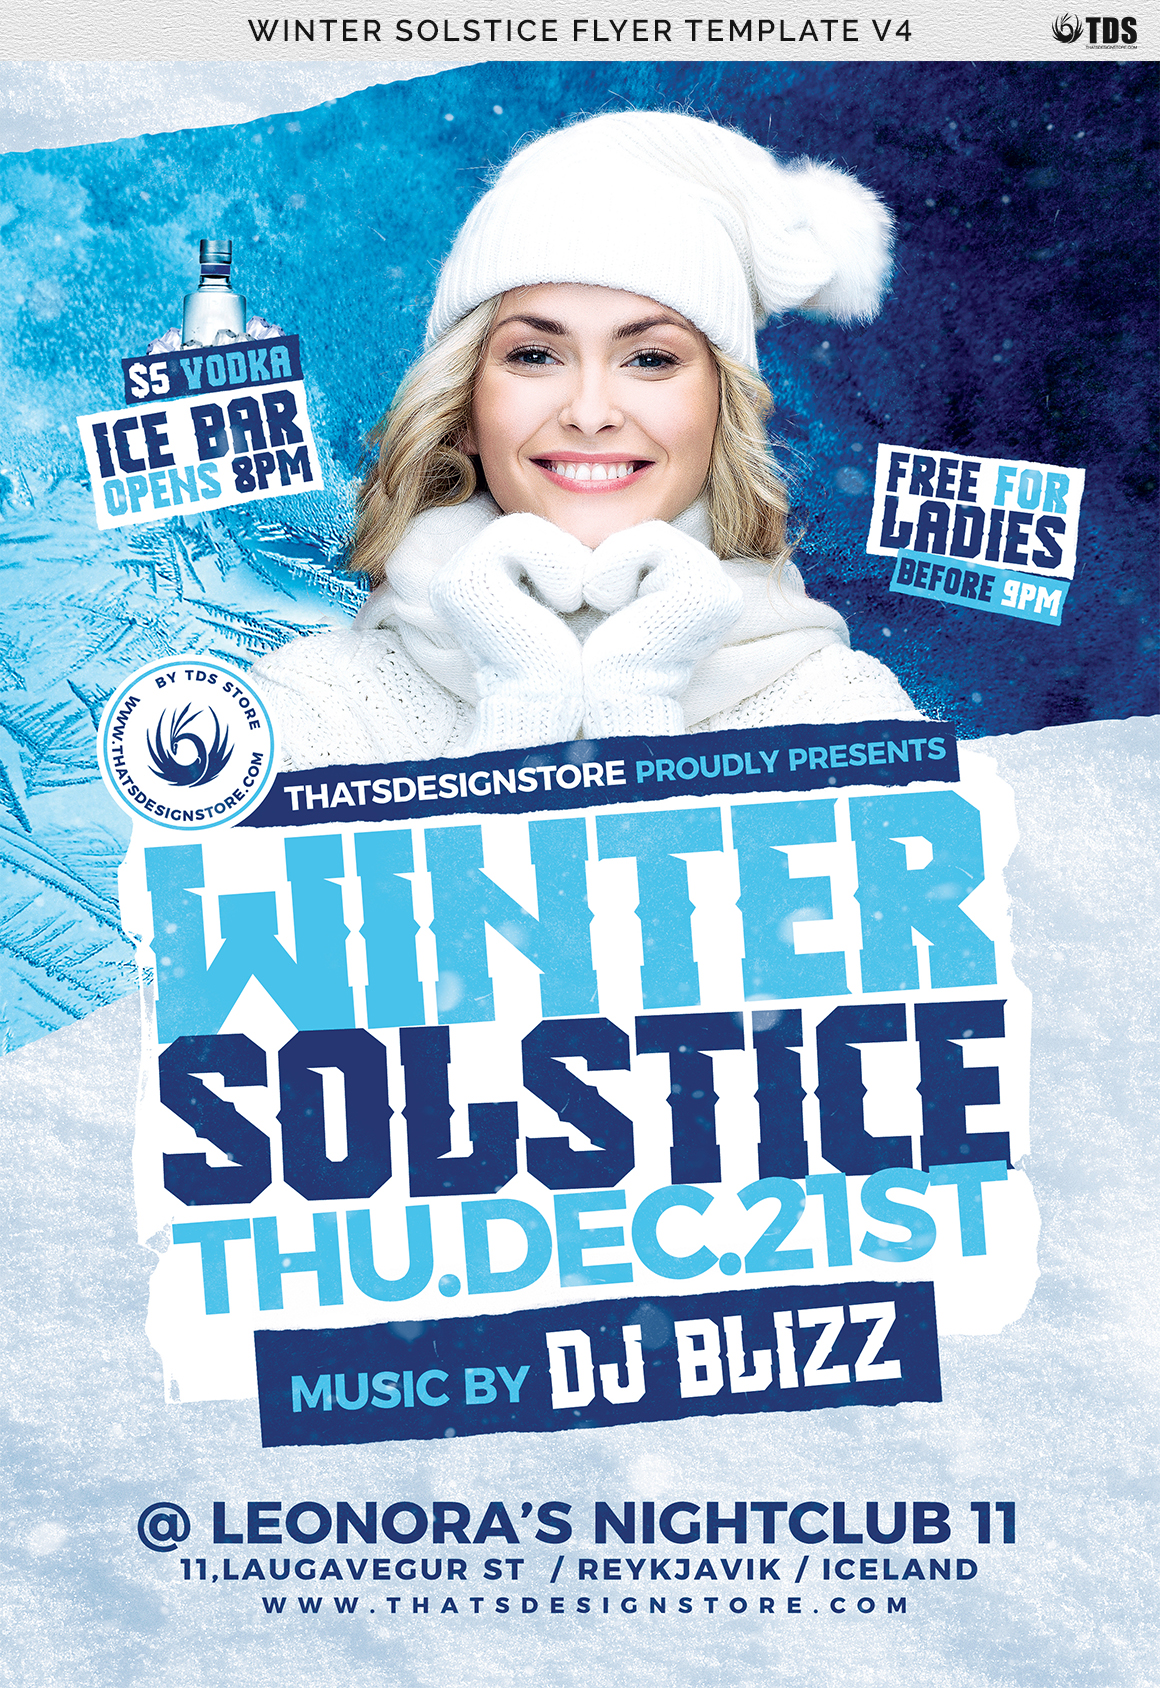 Winter Solstice Flyer Template V4 example image 7